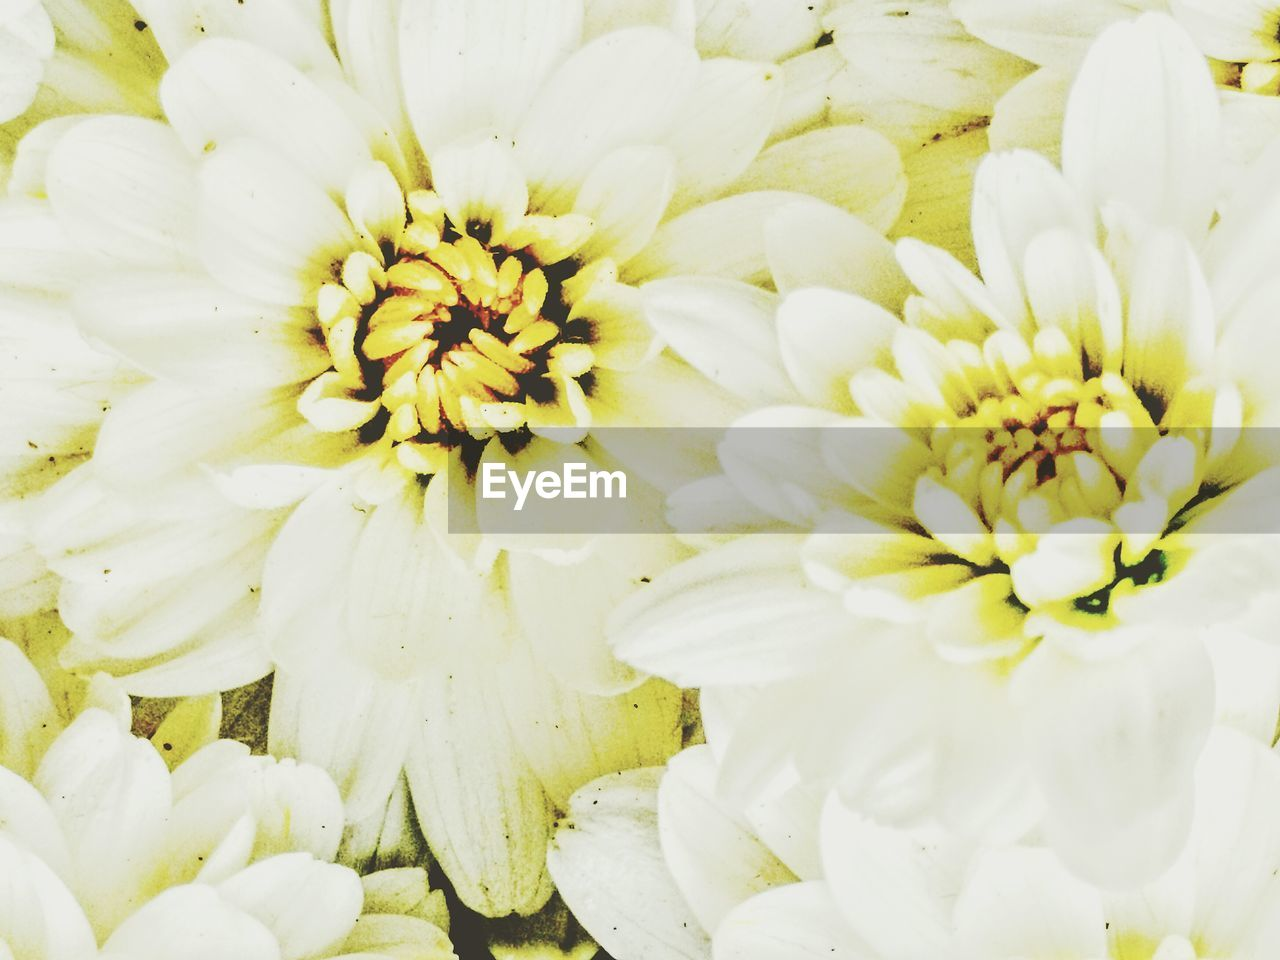 flower, petal, fragility, flower head, beauty in nature, freshness, white color, nature, no people, close-up, growth, blooming, full frame, plant, outdoors, day, backgrounds